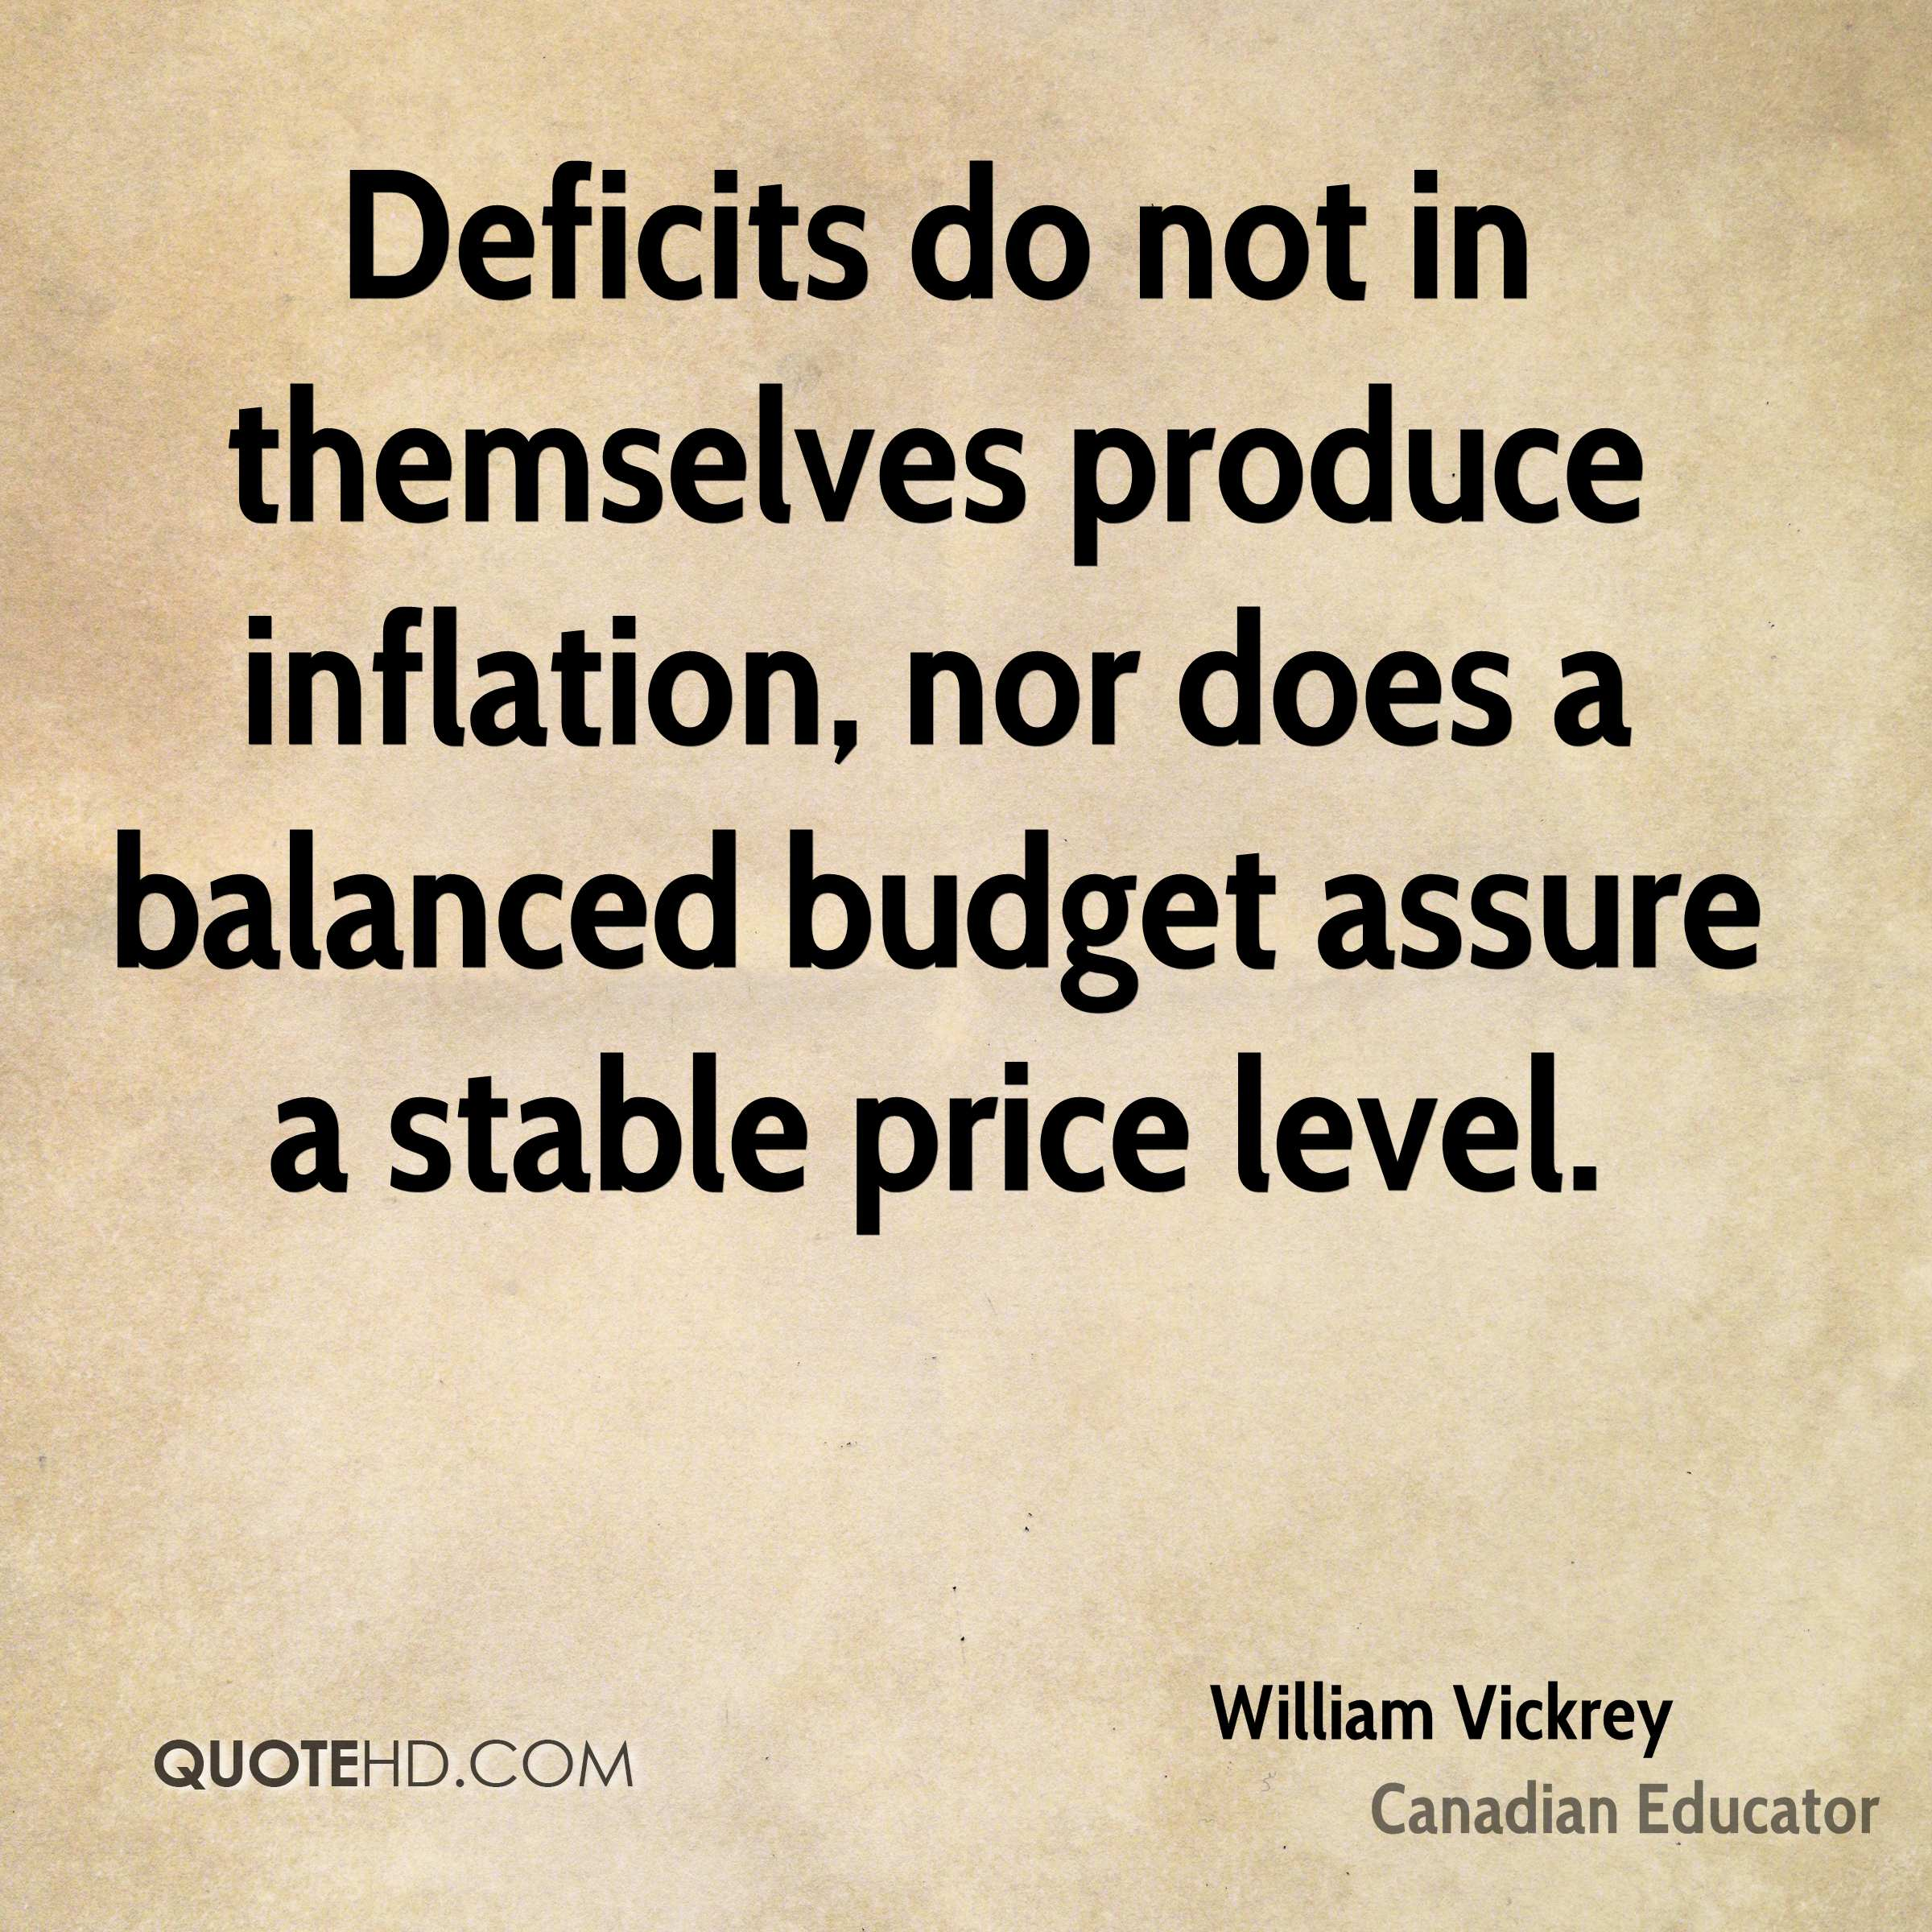 Deficits do not in themselves produce inflation, nor does a balanced budget assure a stable price level.